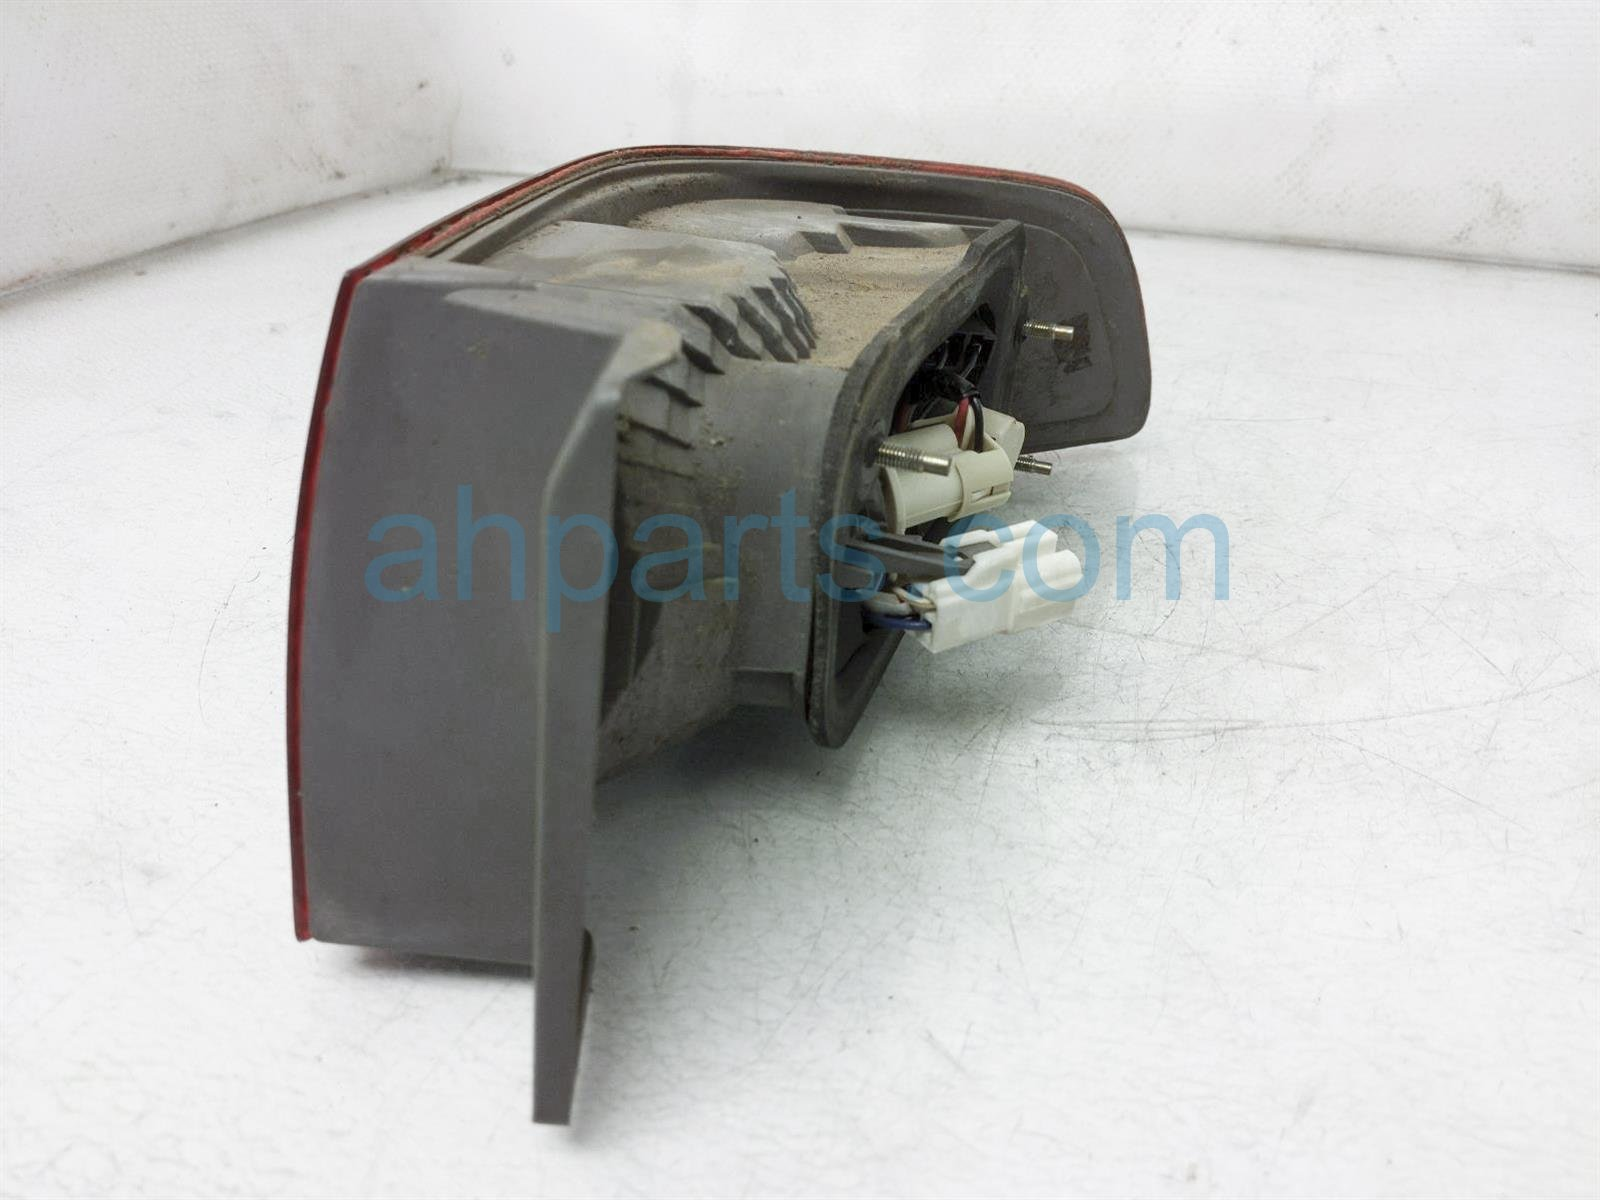 2001 Toyota Camry Rear Driver Tail Light/lamp 81561 AA030 Replacement